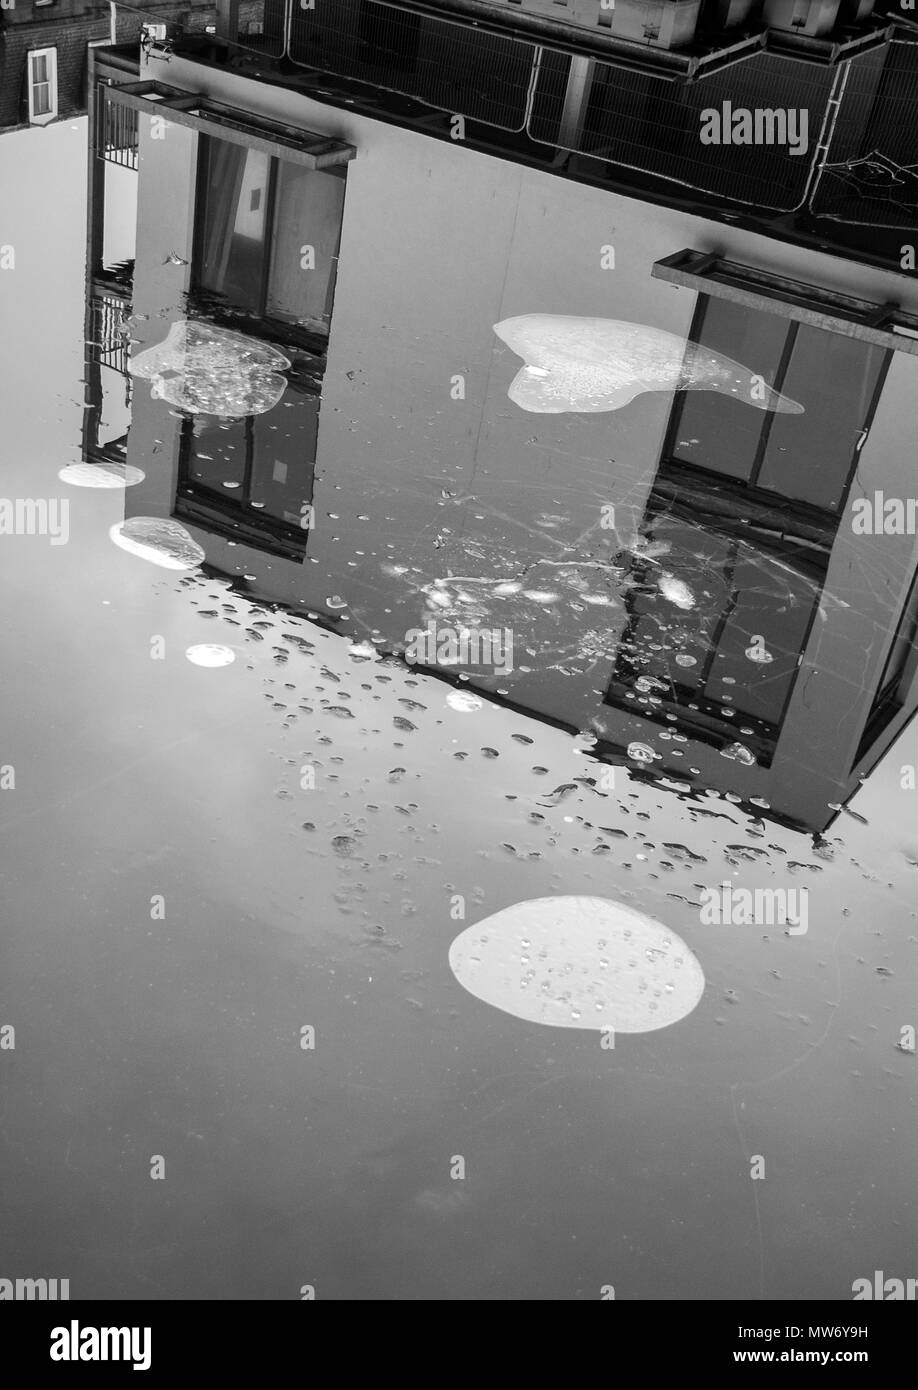 EDINBURGH, SCOTLAND- JANUARY 7TH 2009: A black and white photograph of a reflection of a house in the Union Canal water in Edinburgh. - Stock Image